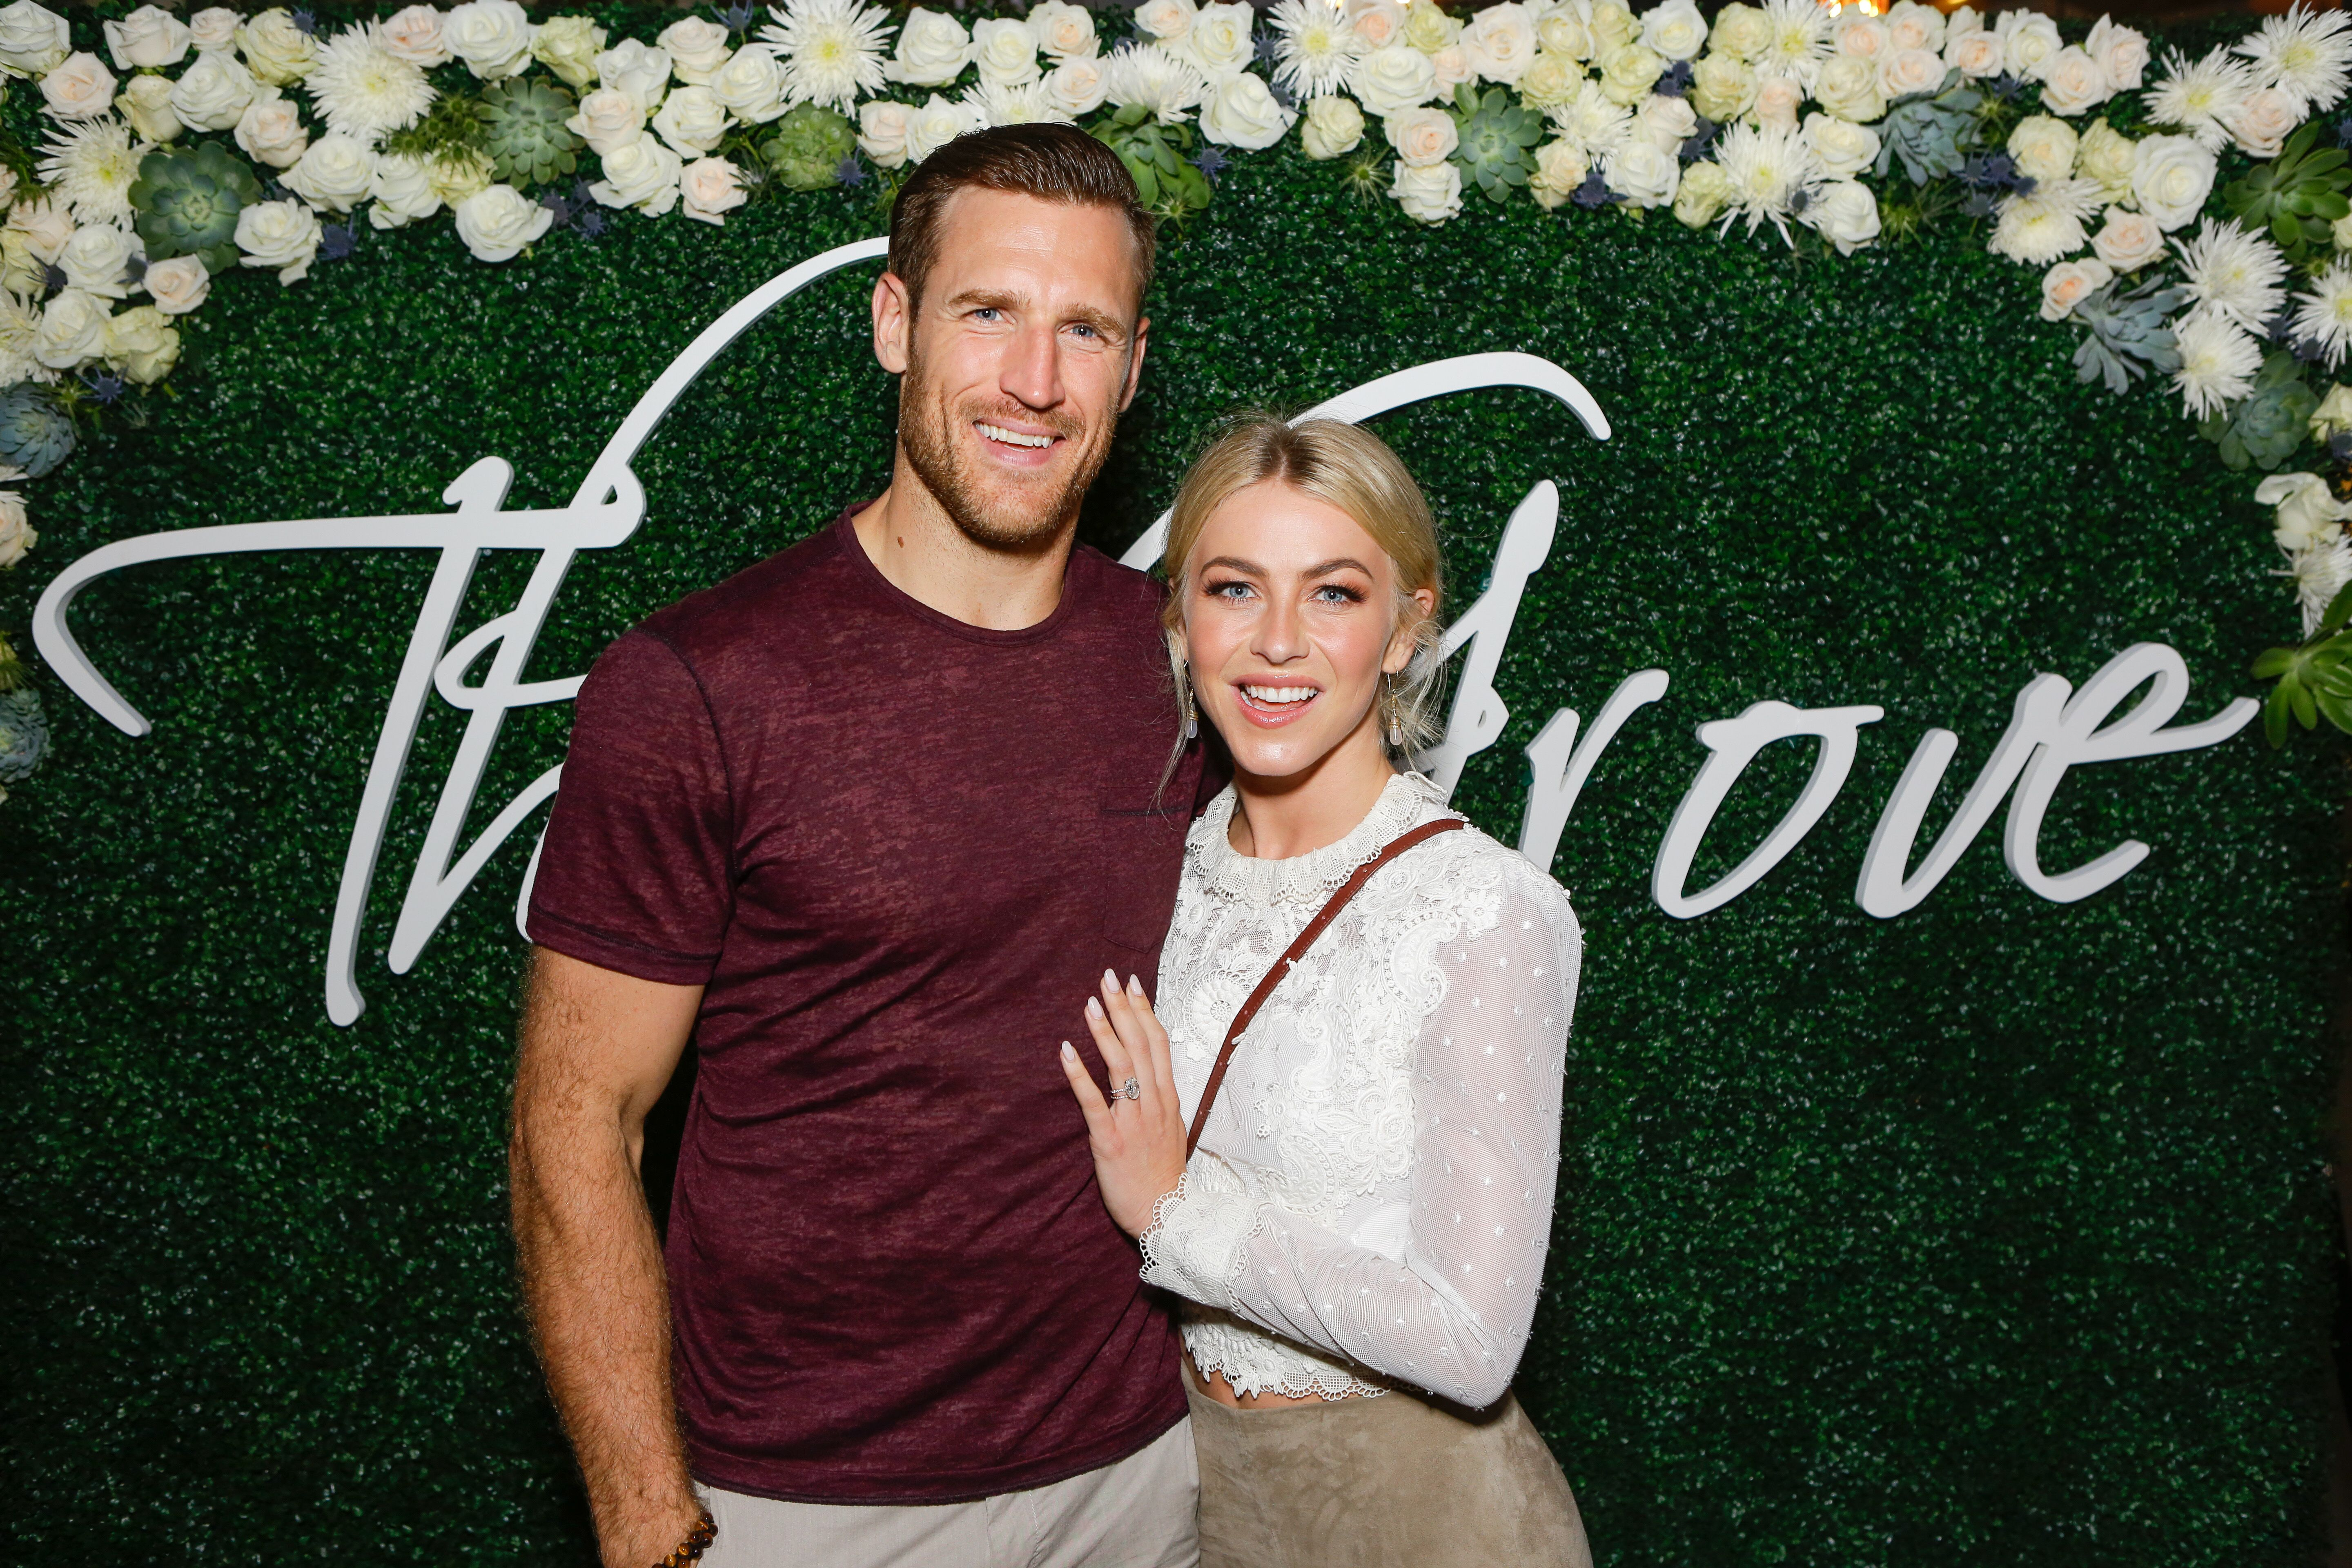 Brooks Laich and Julianne Hough at the Paint & Sip & Help event on October 12, 2017, in Los Angeles, California | Photo: Tiffany Rose/Getty Images